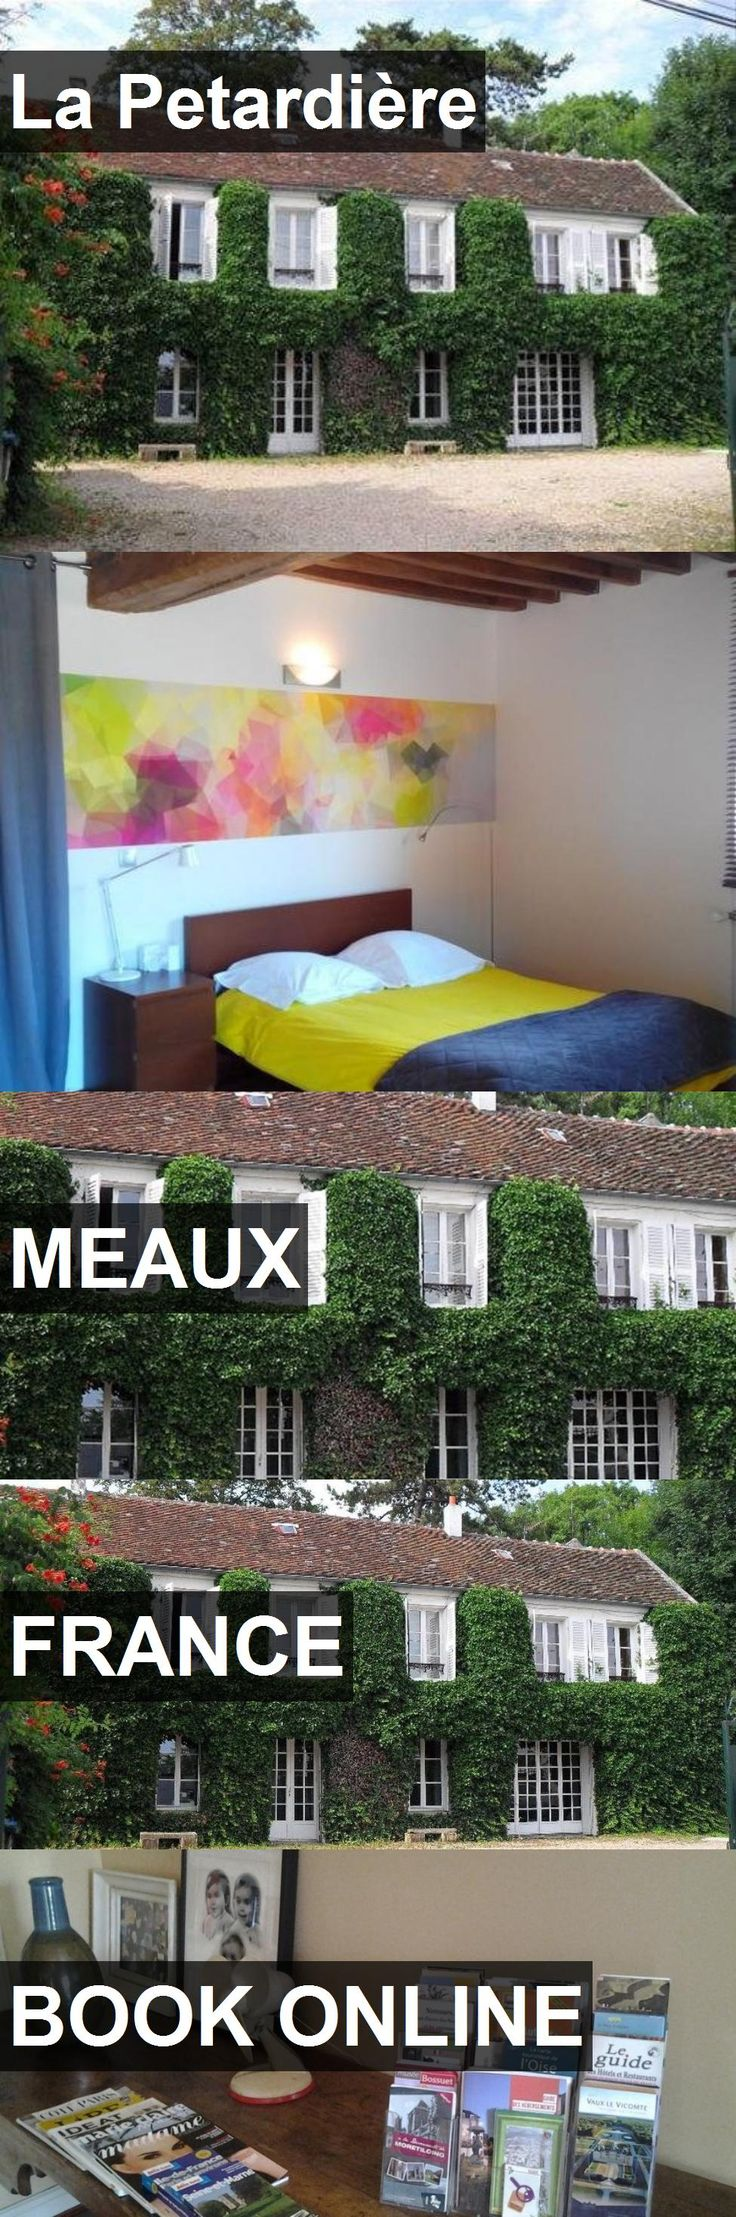 Hotel La Petardière in Meaux, France. For more information, photos, reviews and best prices please follow the link. #France #Meaux #LaPetardière #hotel #travel #vacation